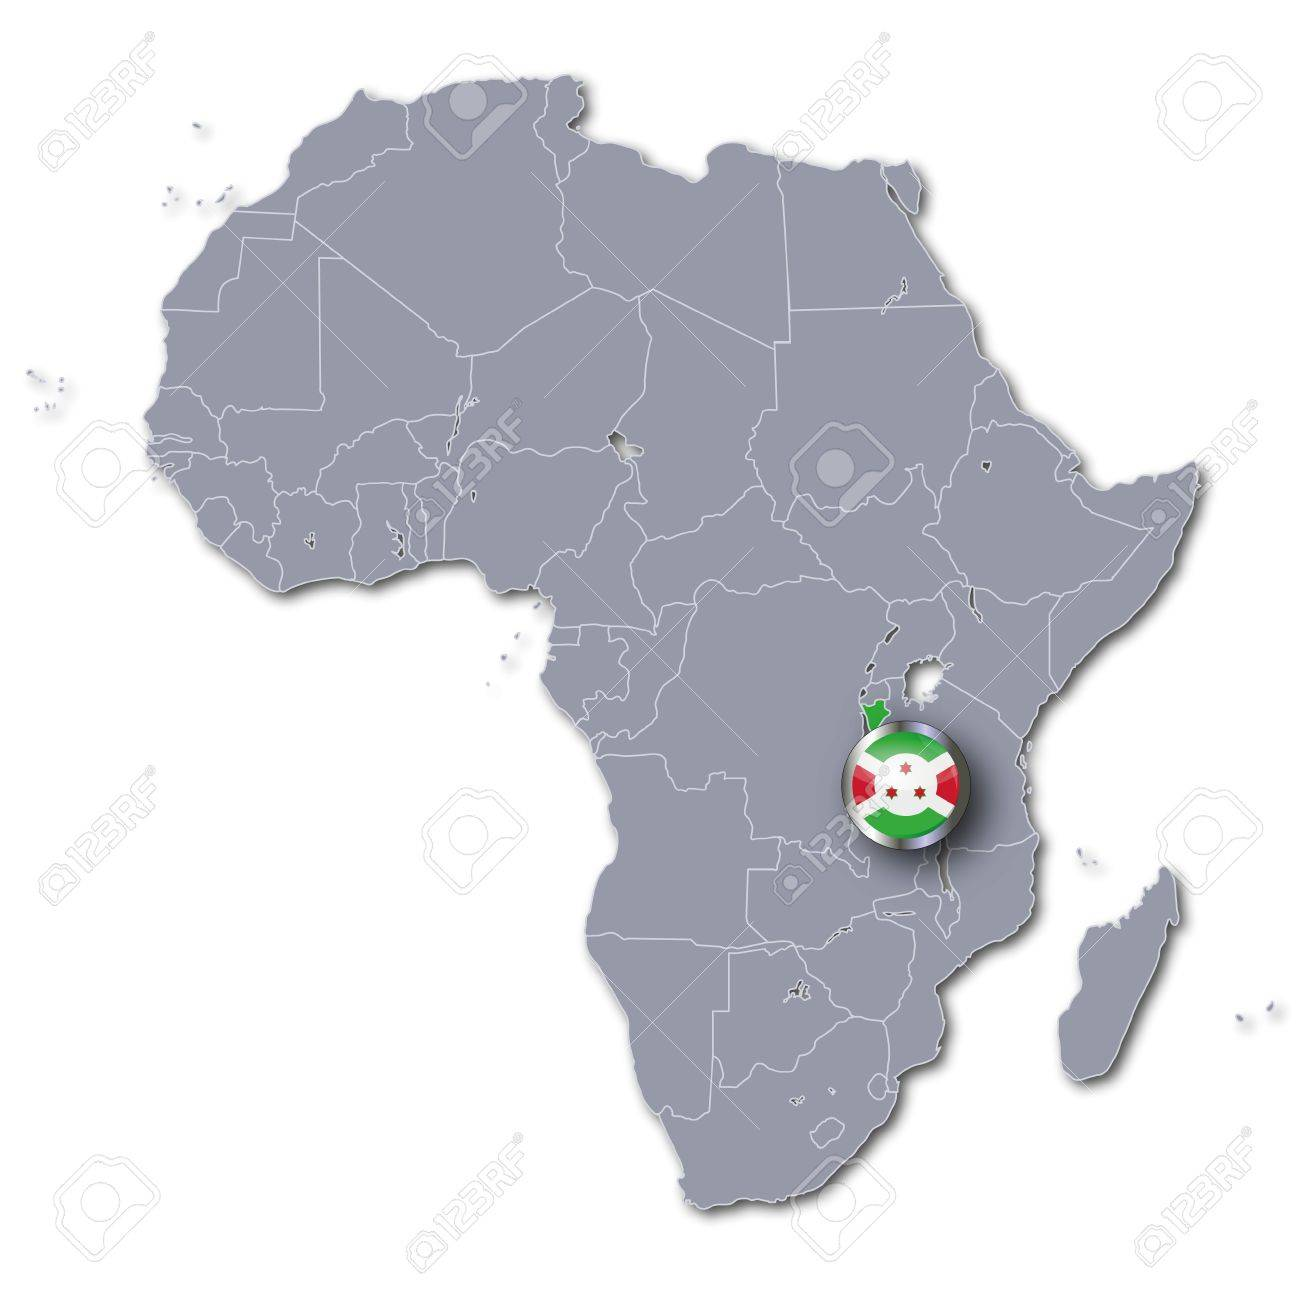 Africa Map With Burundi Stock Photo Picture And Royalty Free Image